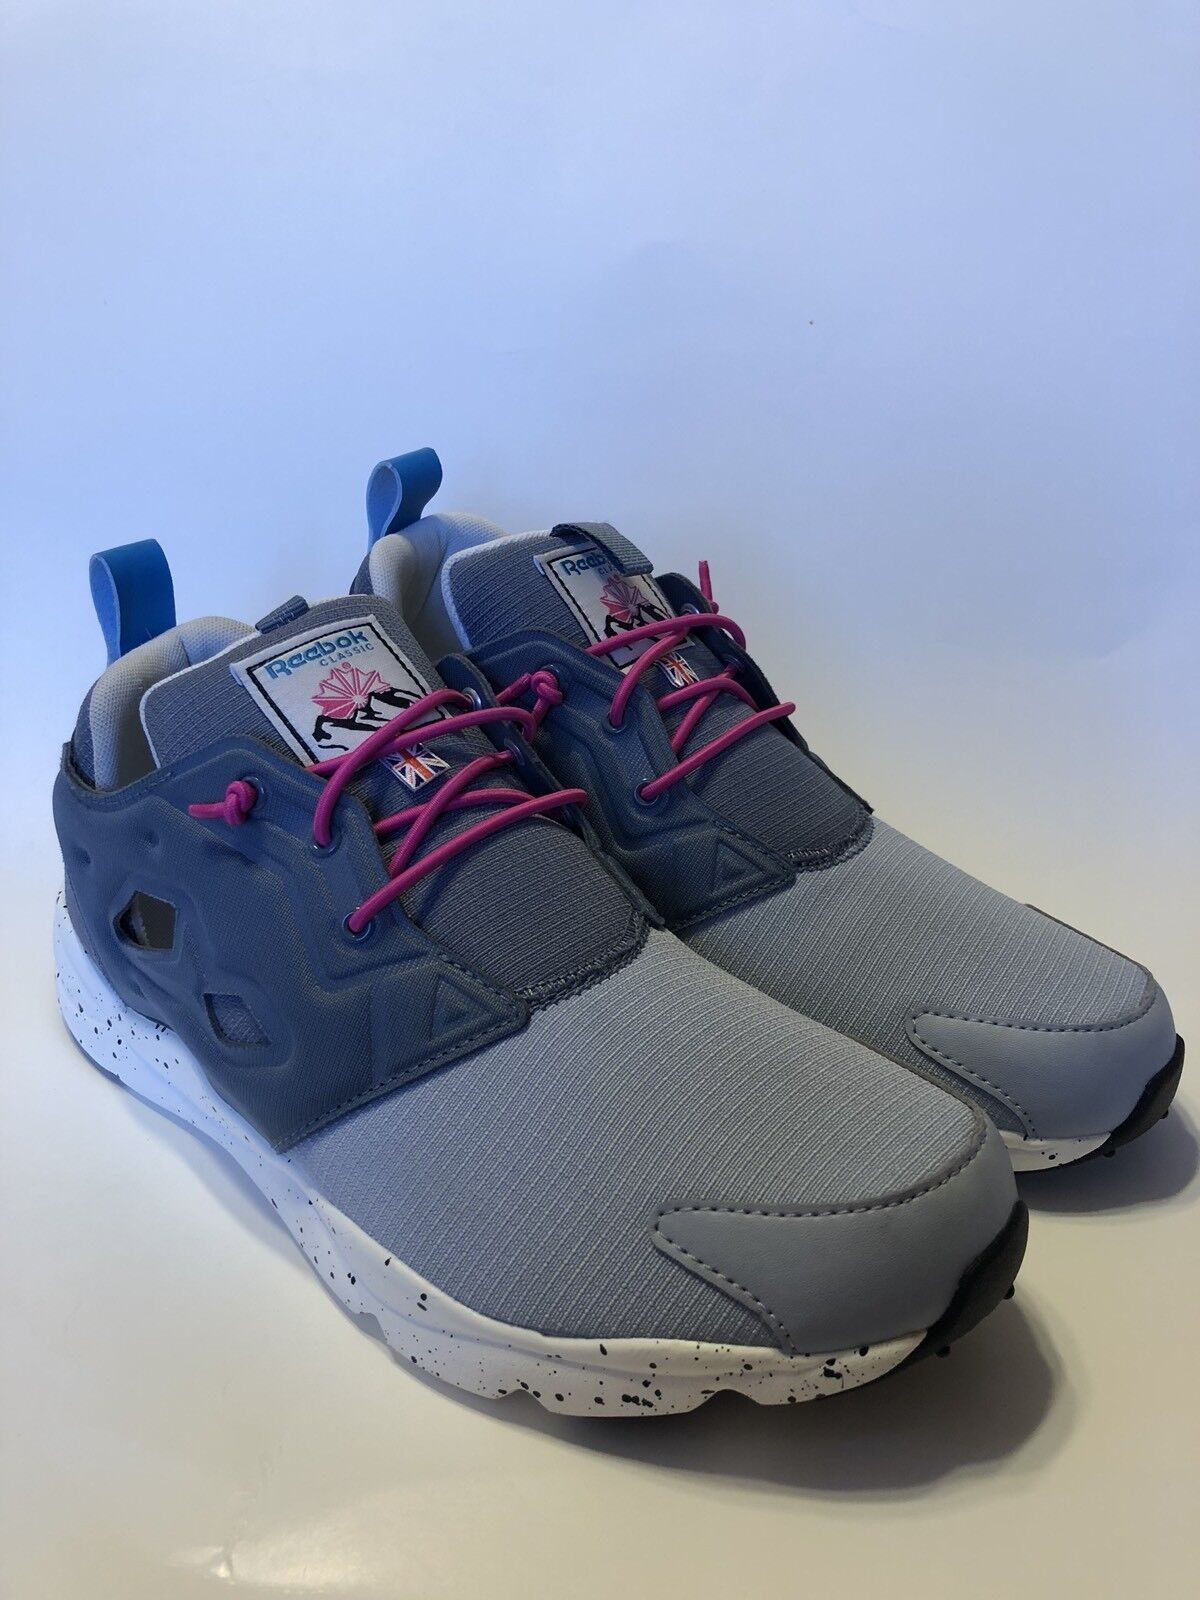 Reebok Women's Furylite Out- Color Running Shoes 116800470 Size US 10 W